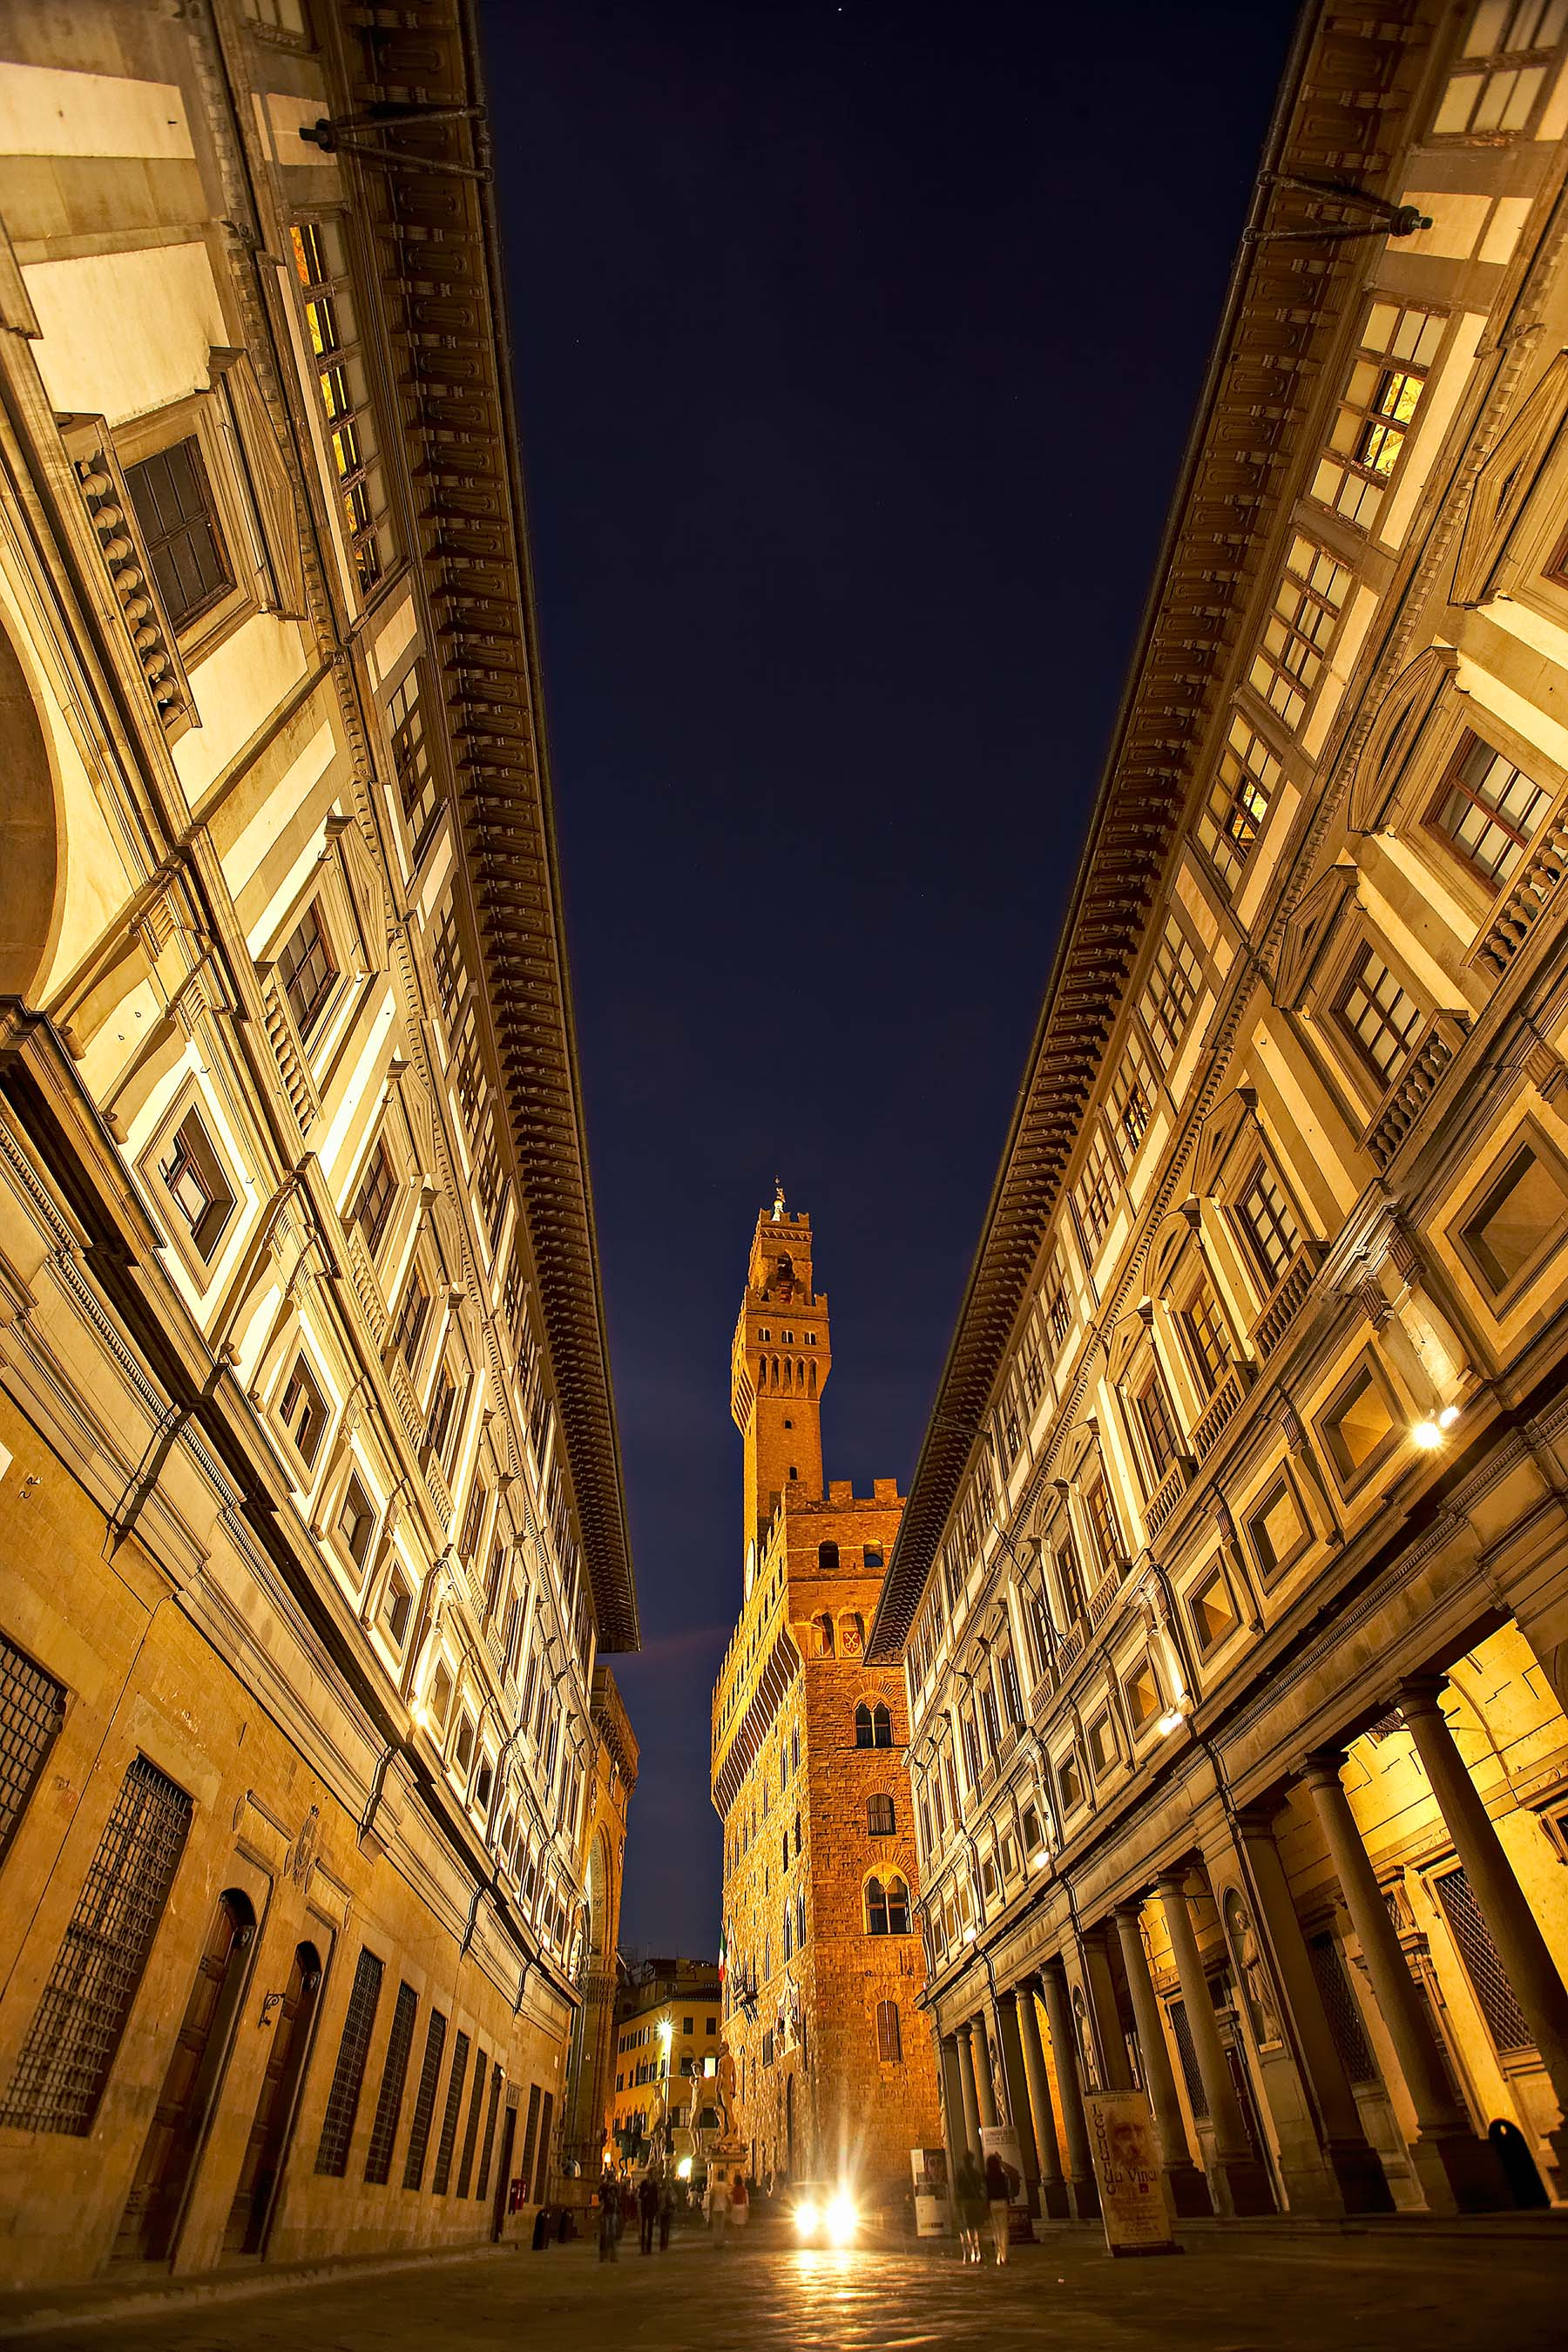 Florence, Italy - Palazzo Vechio at dusk framed by the Ufizzi Gallery